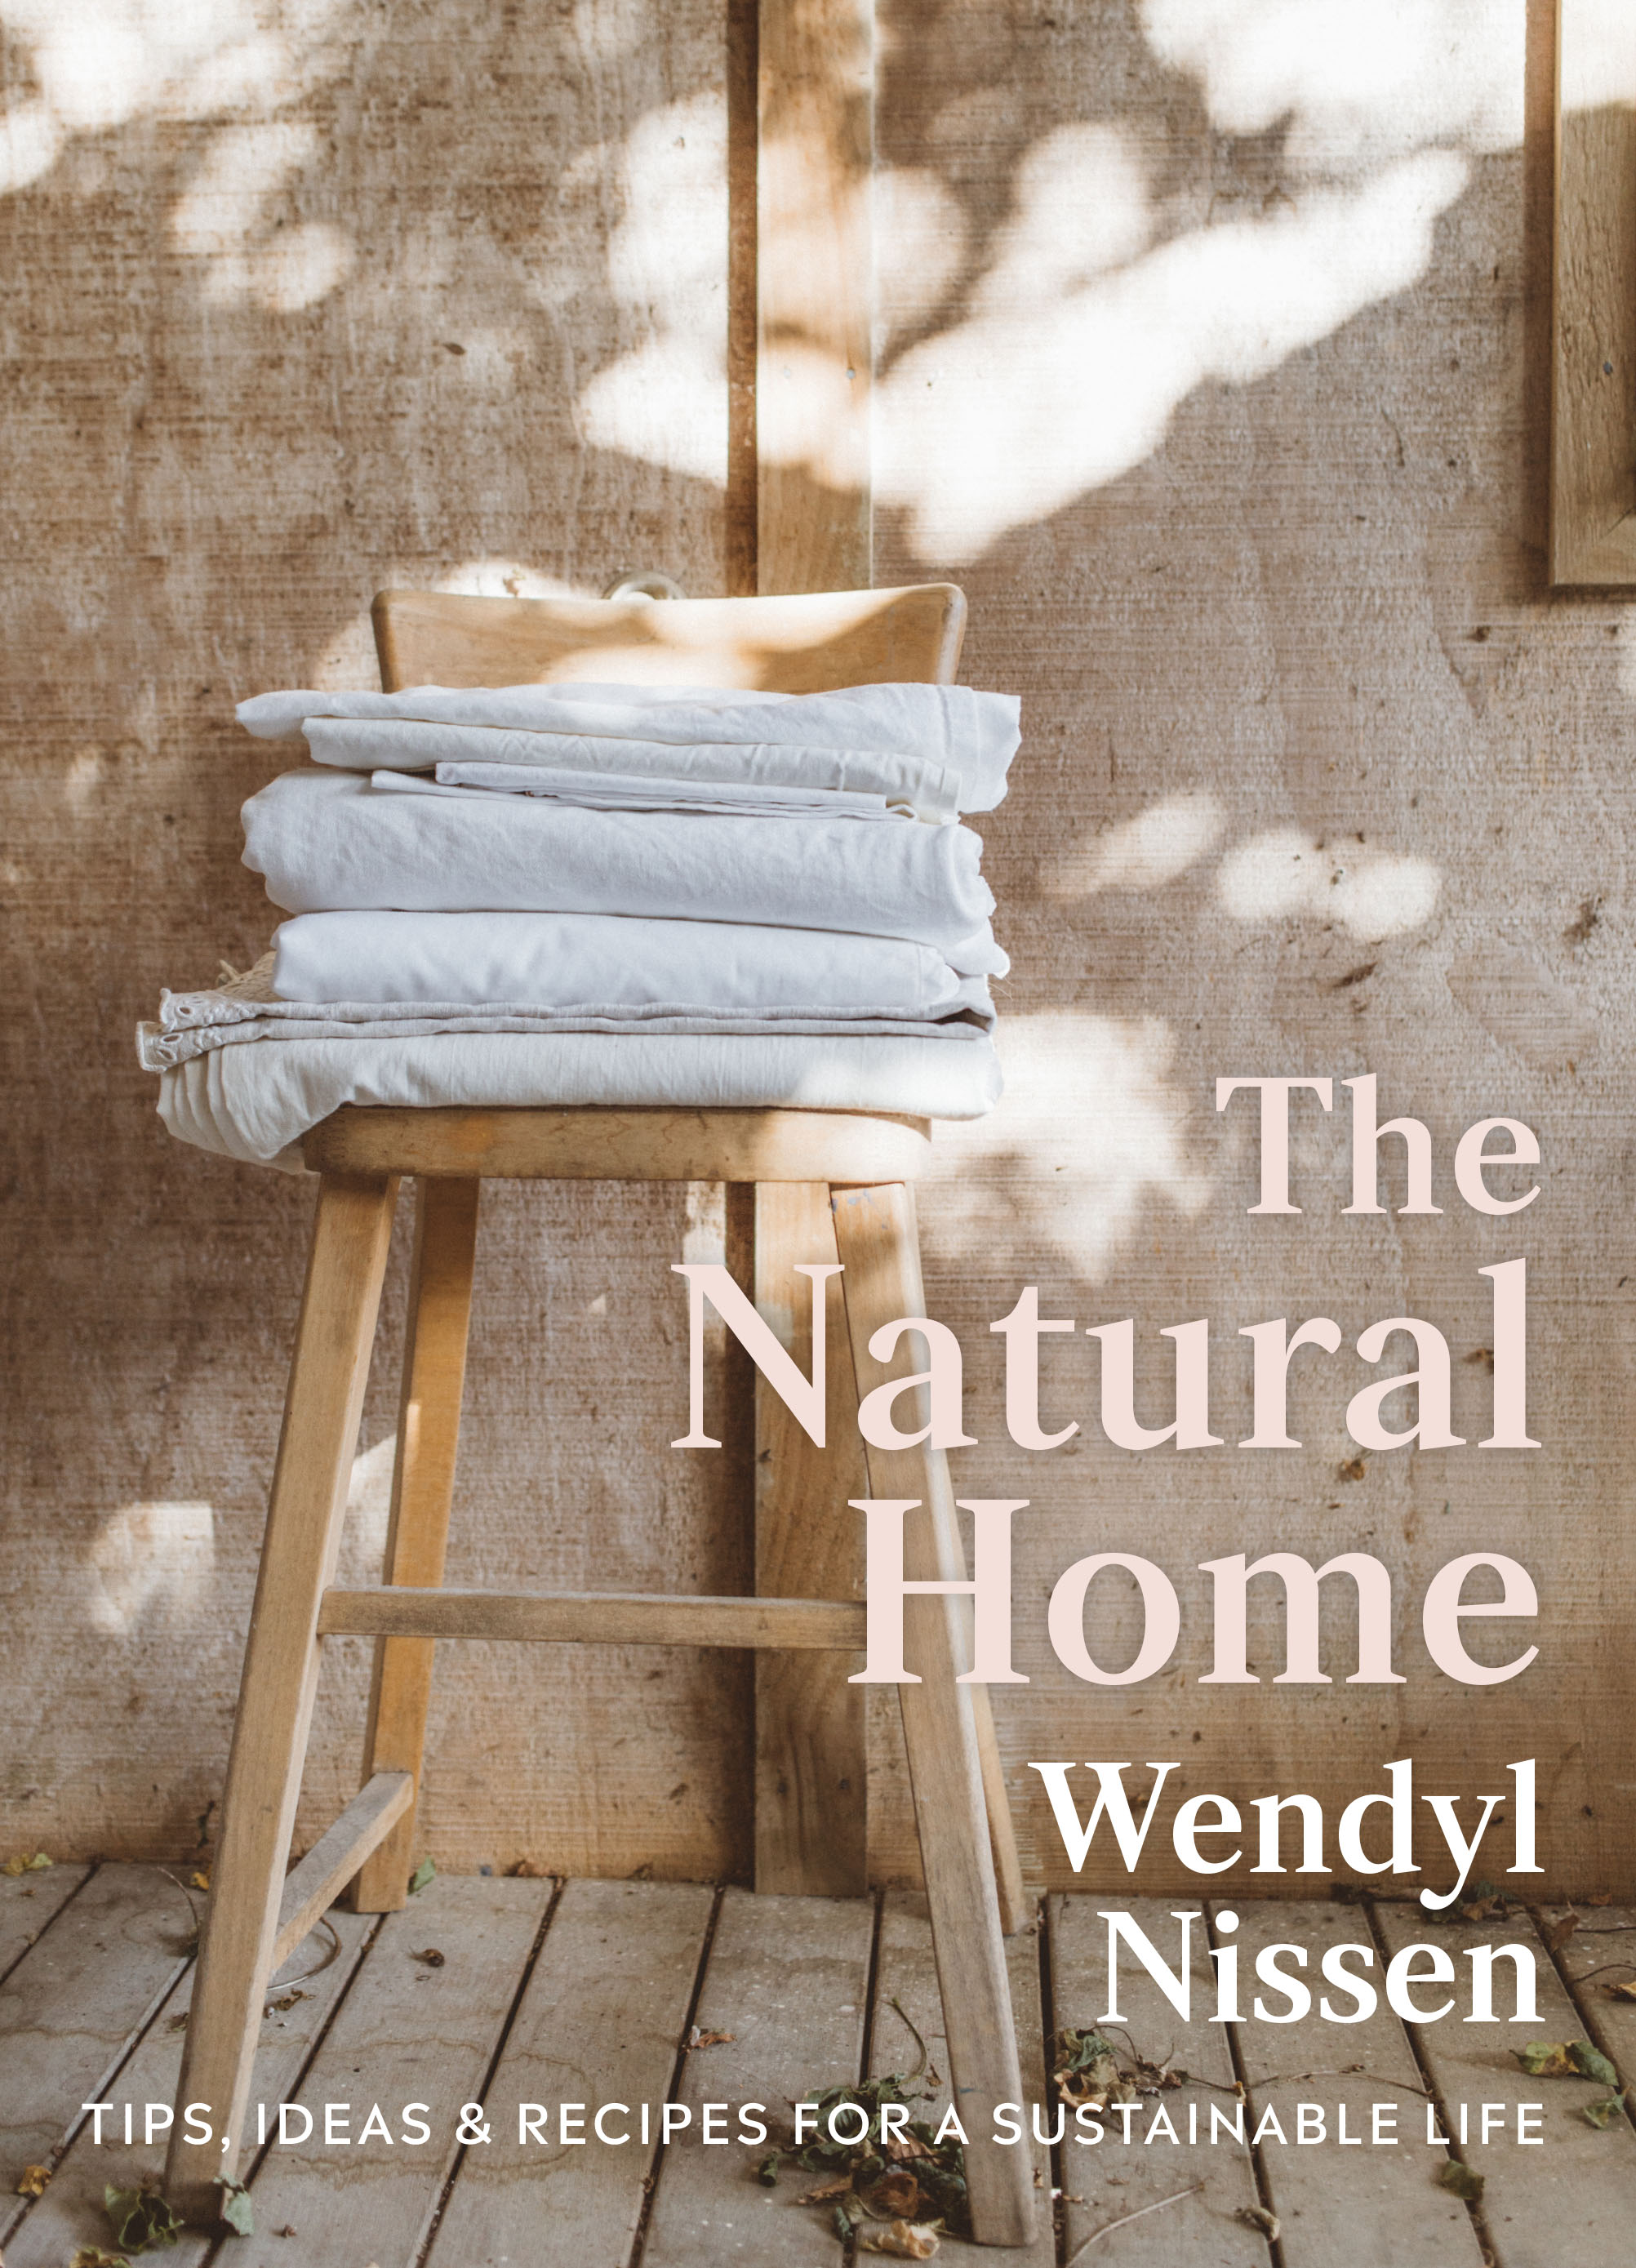 TheNaturalHome_COVER_front.jpg